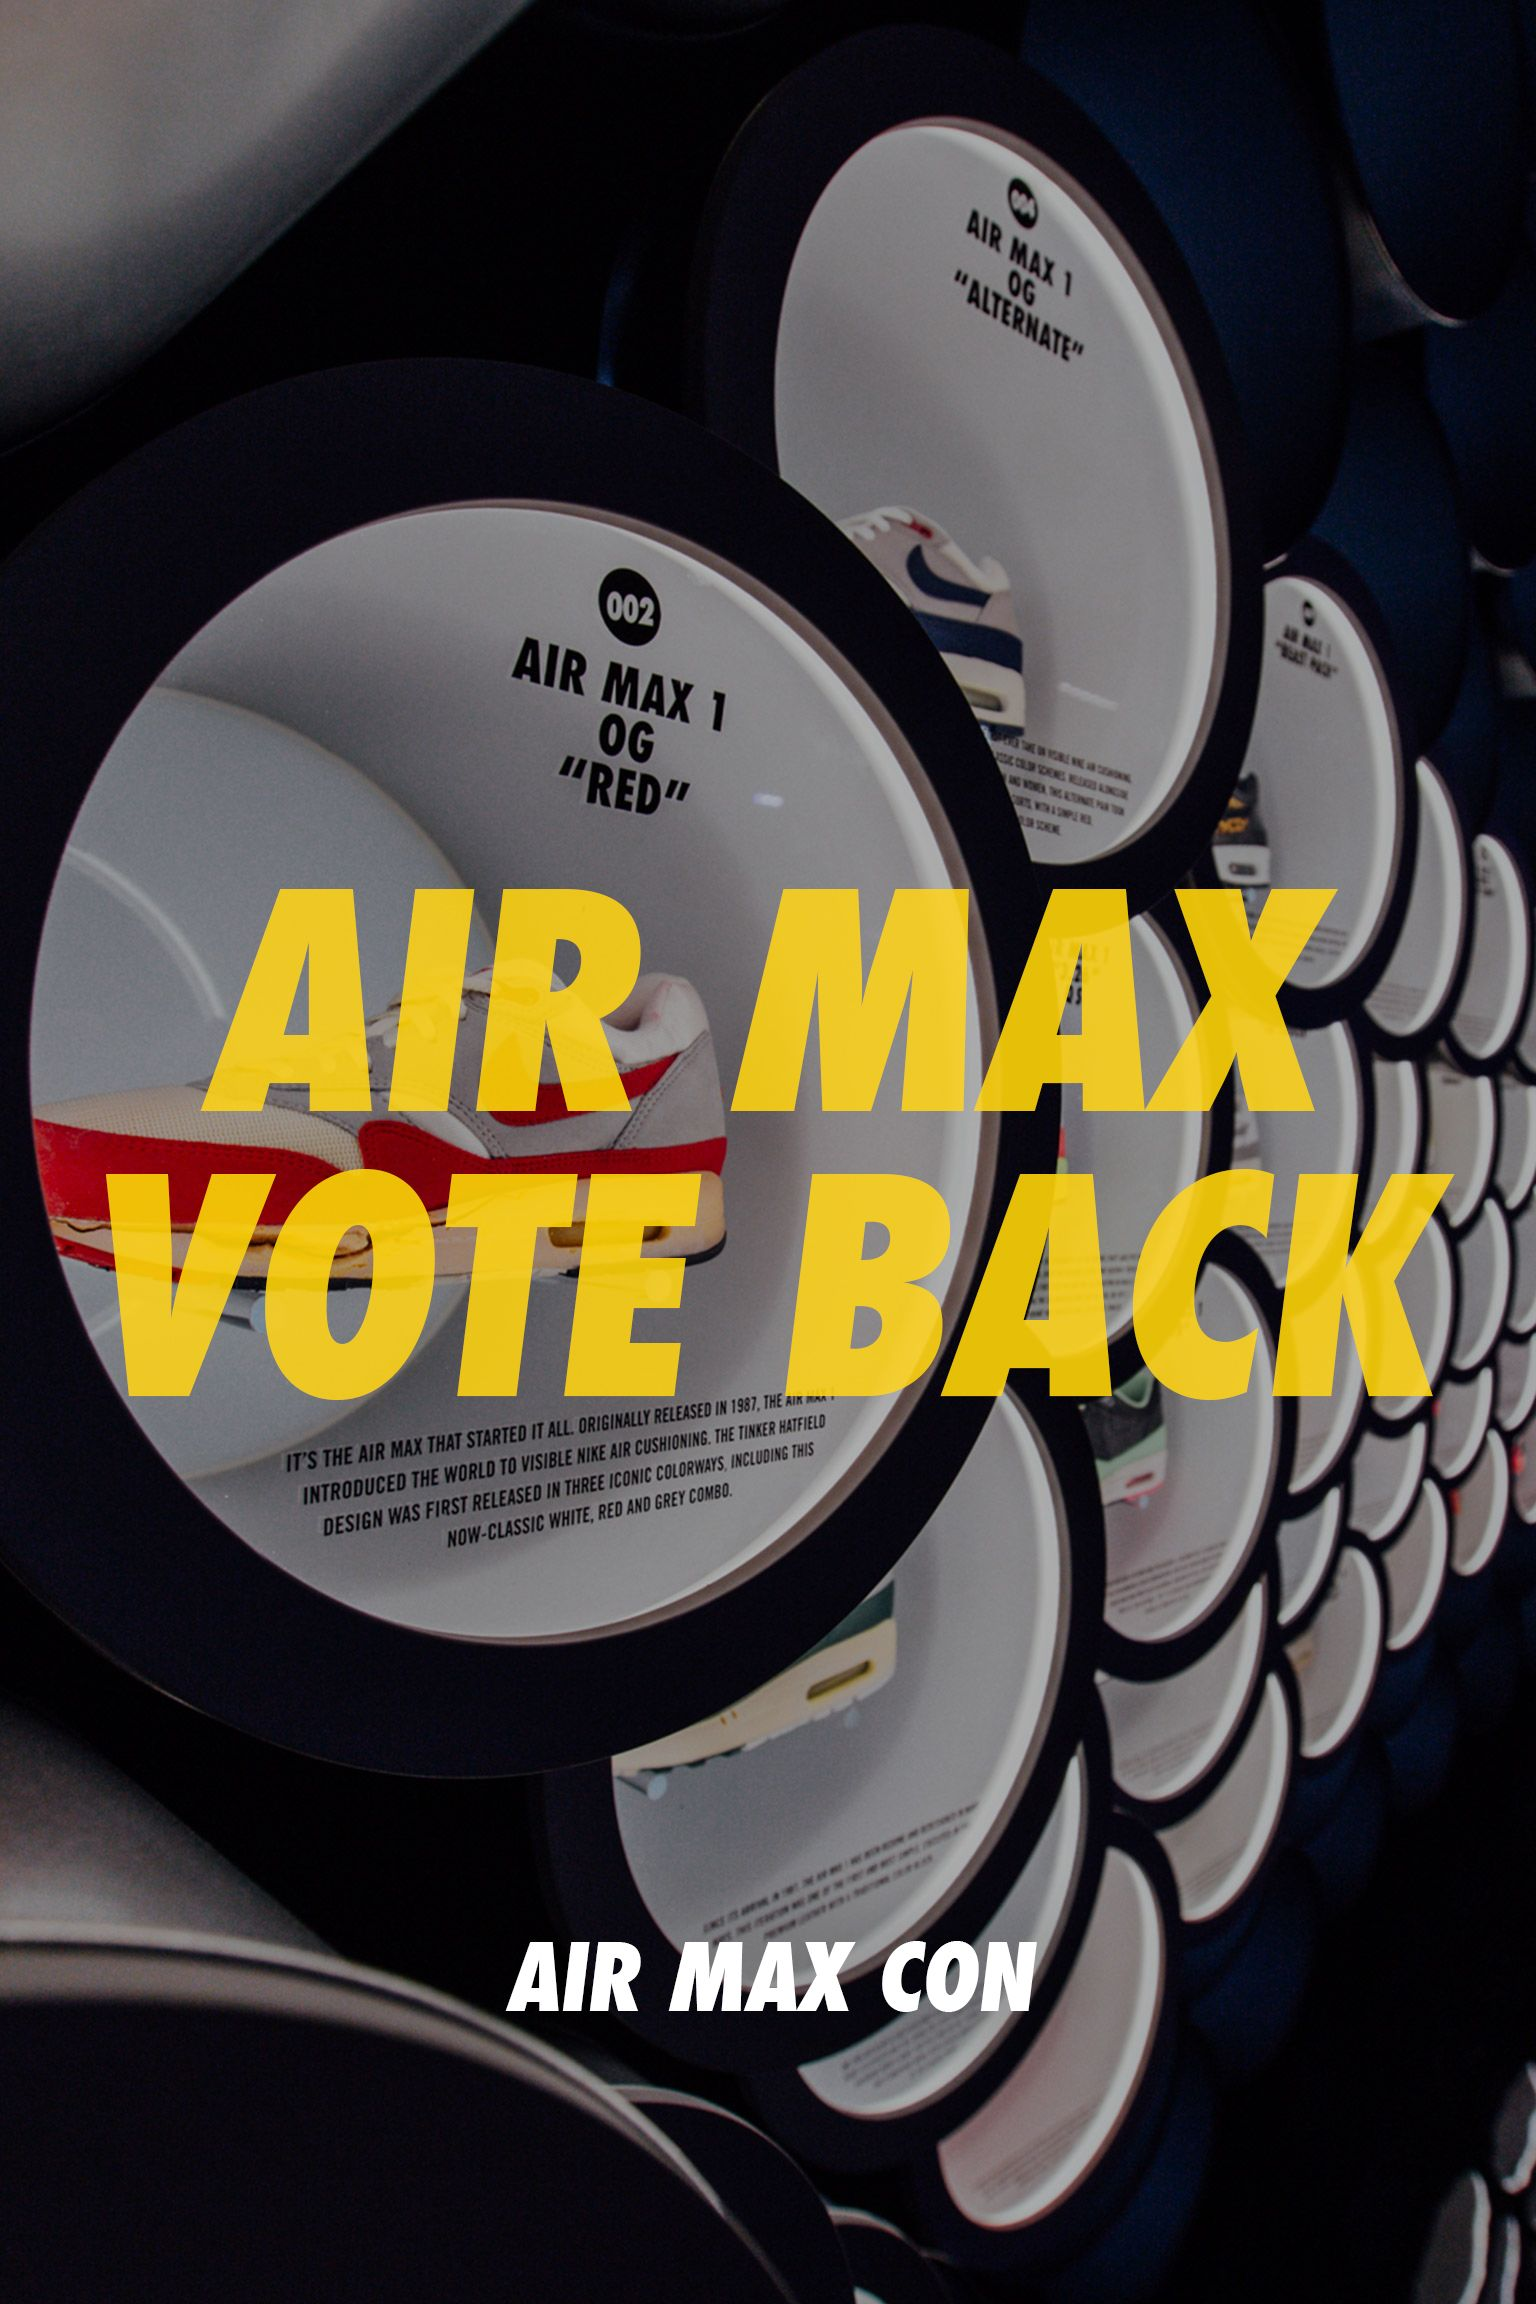 Nike Air Max Con NYC: Vote Back